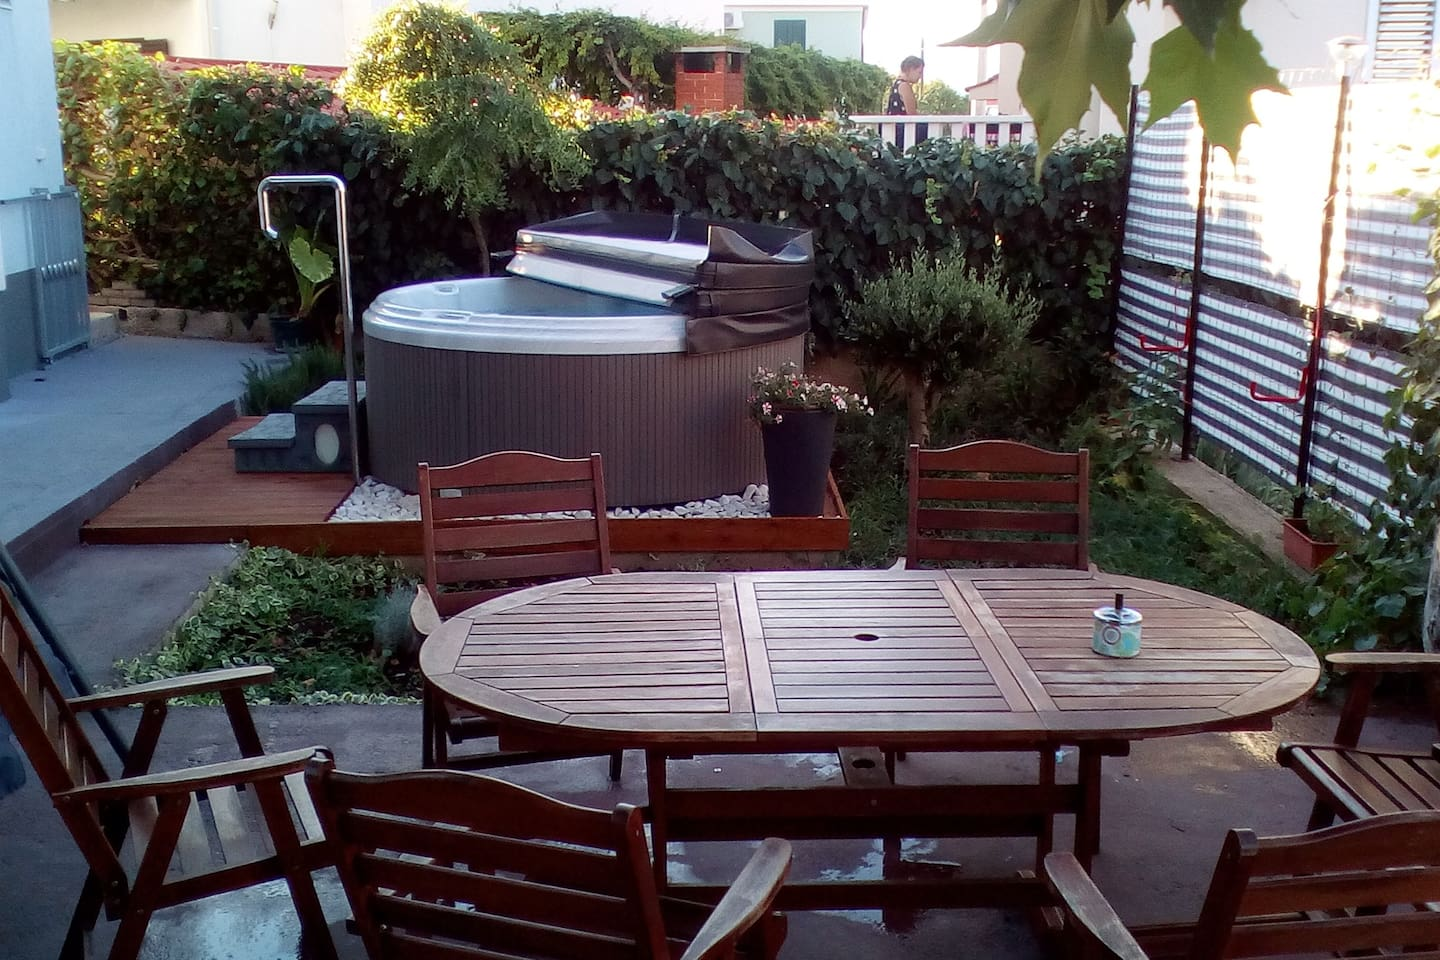 Garden (in the shade) with barbecue and spa pool.